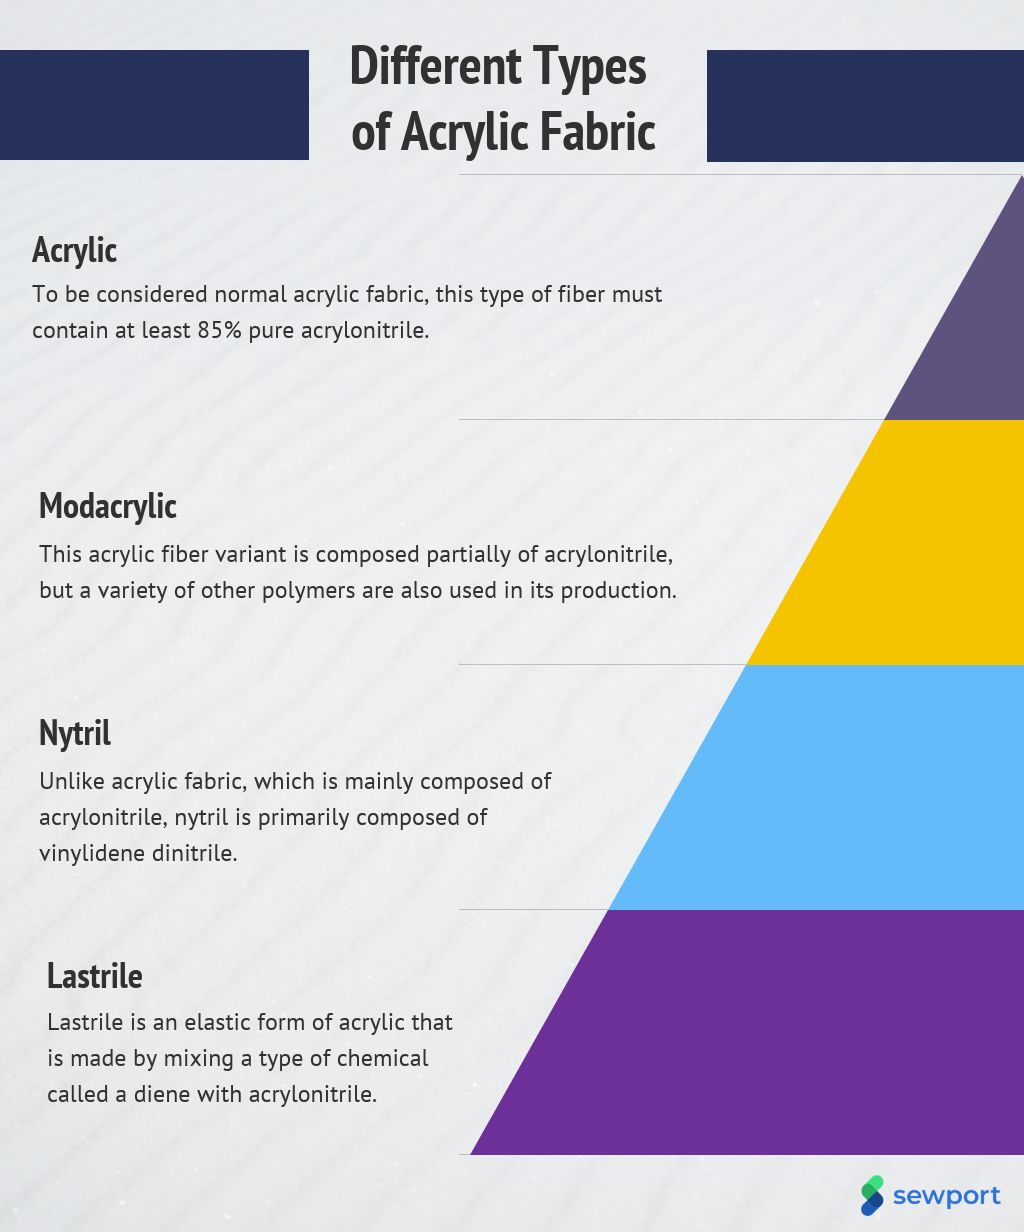 different types of acrylic fabric